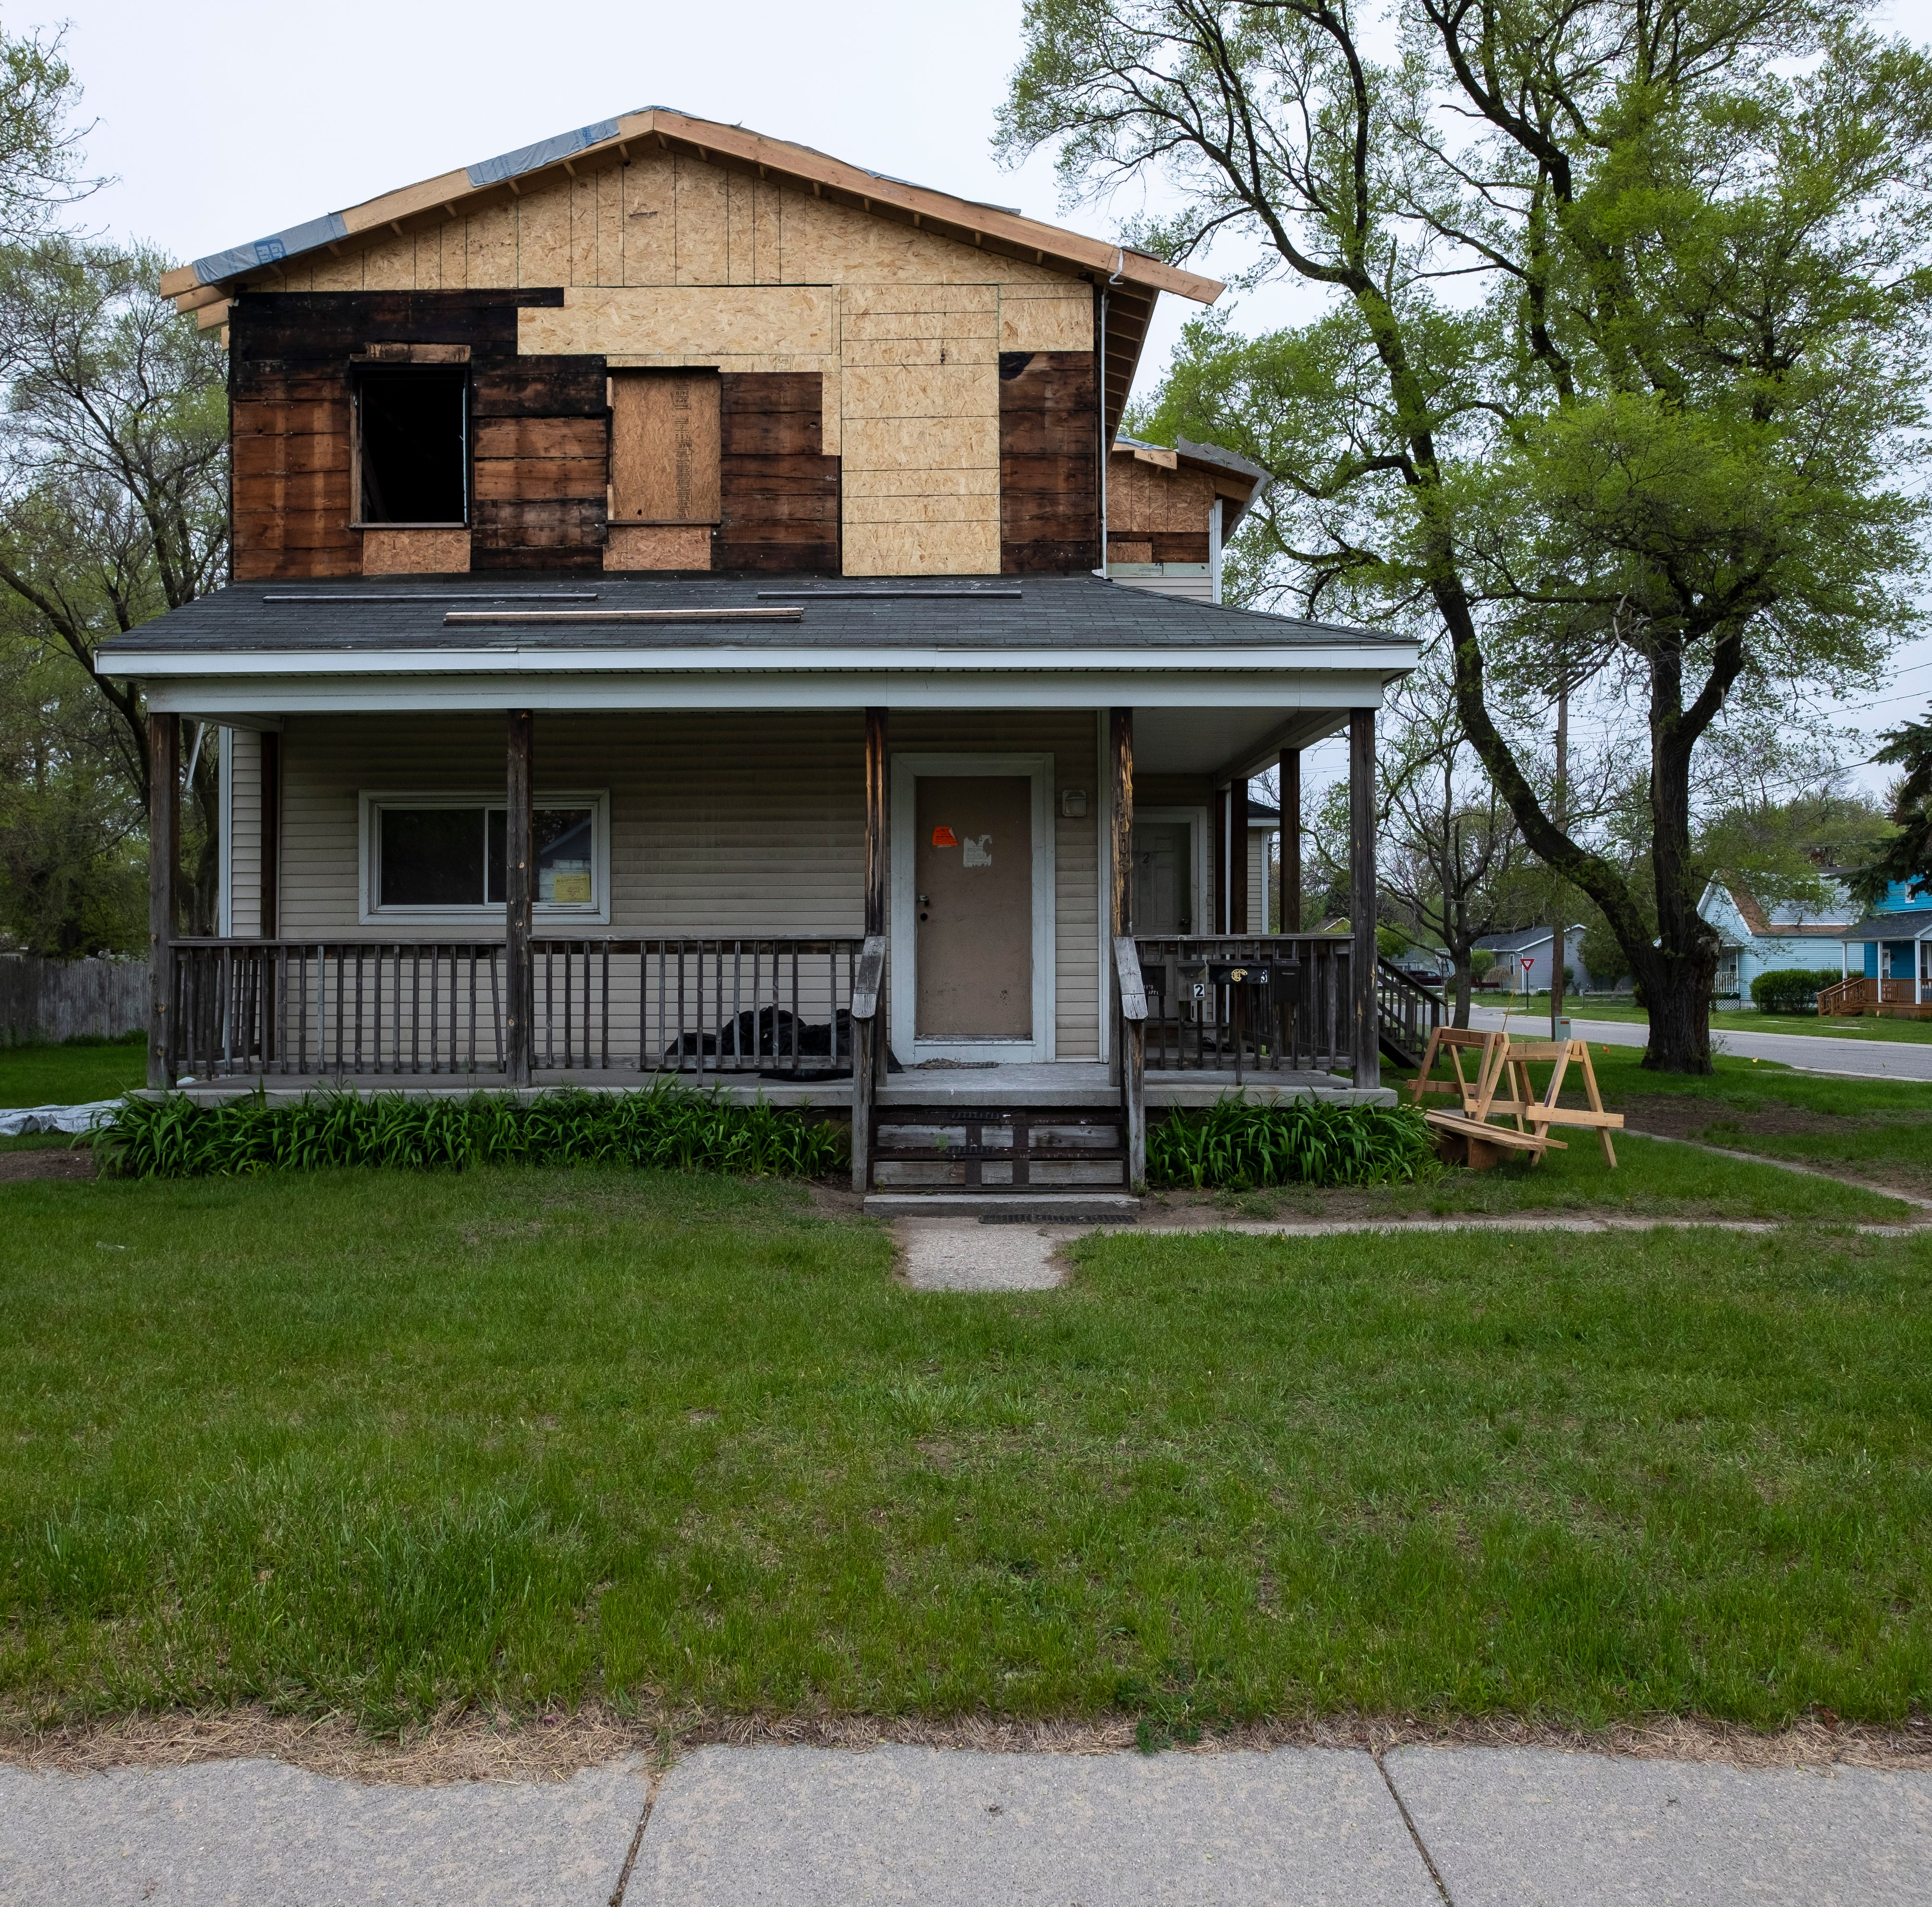 City, neighbors grapple with damaged house 3 years after meth fire